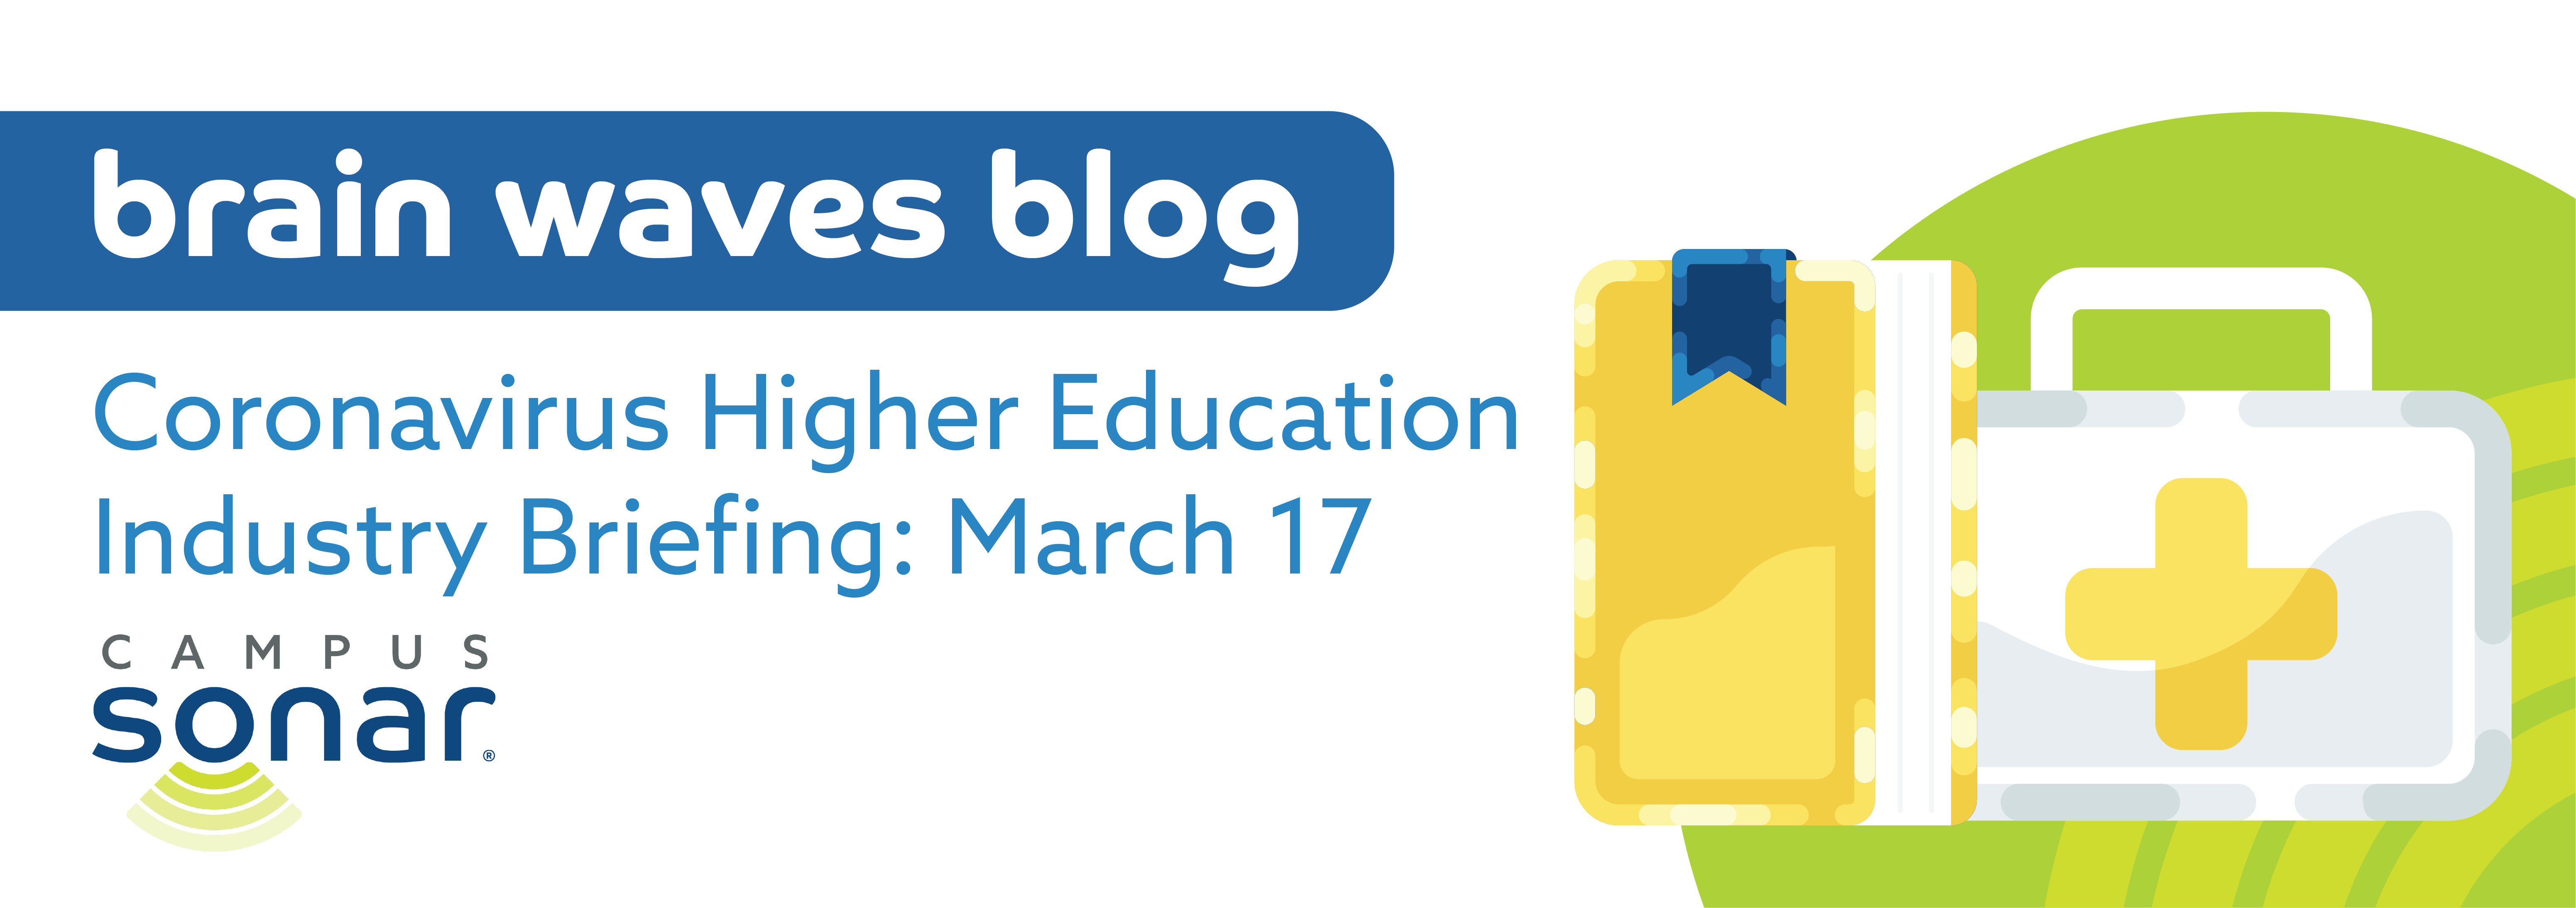 Blog post image for Coronavirus Higher Education Industry Briefing: March 17